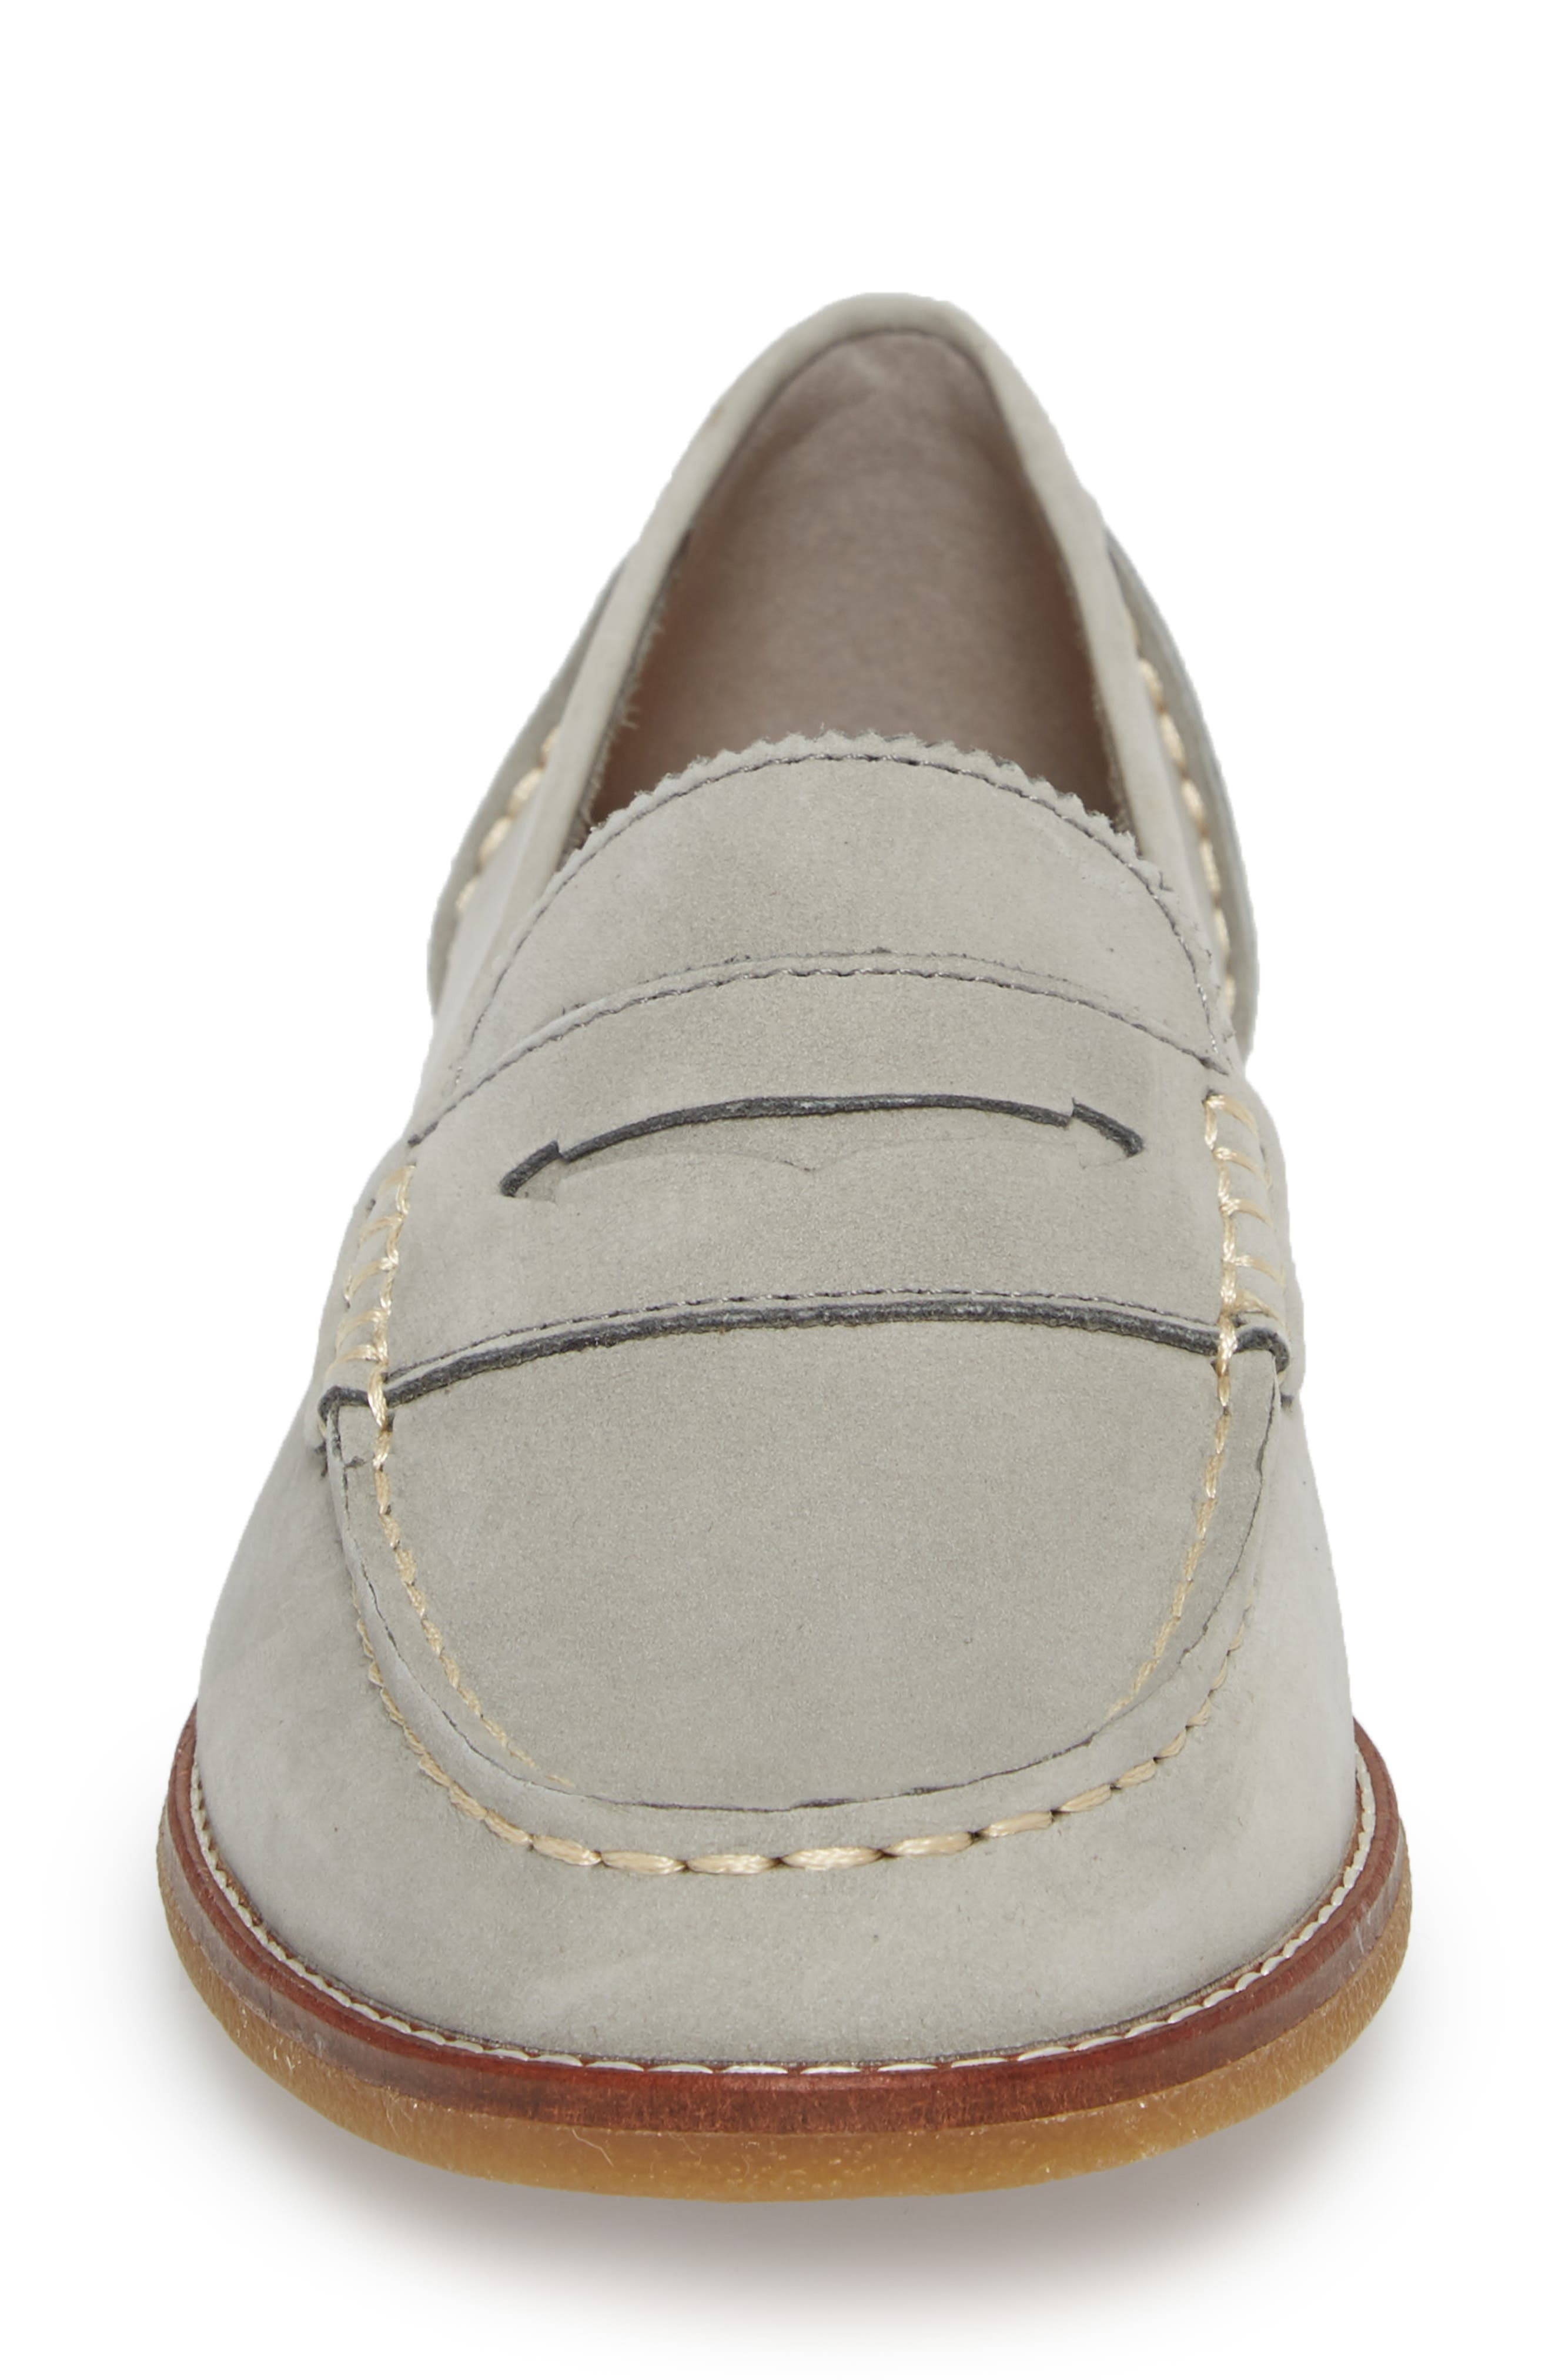 SPERRY, Seaport Penny Loafer, Alternate thumbnail 4, color, GREY LEATHER